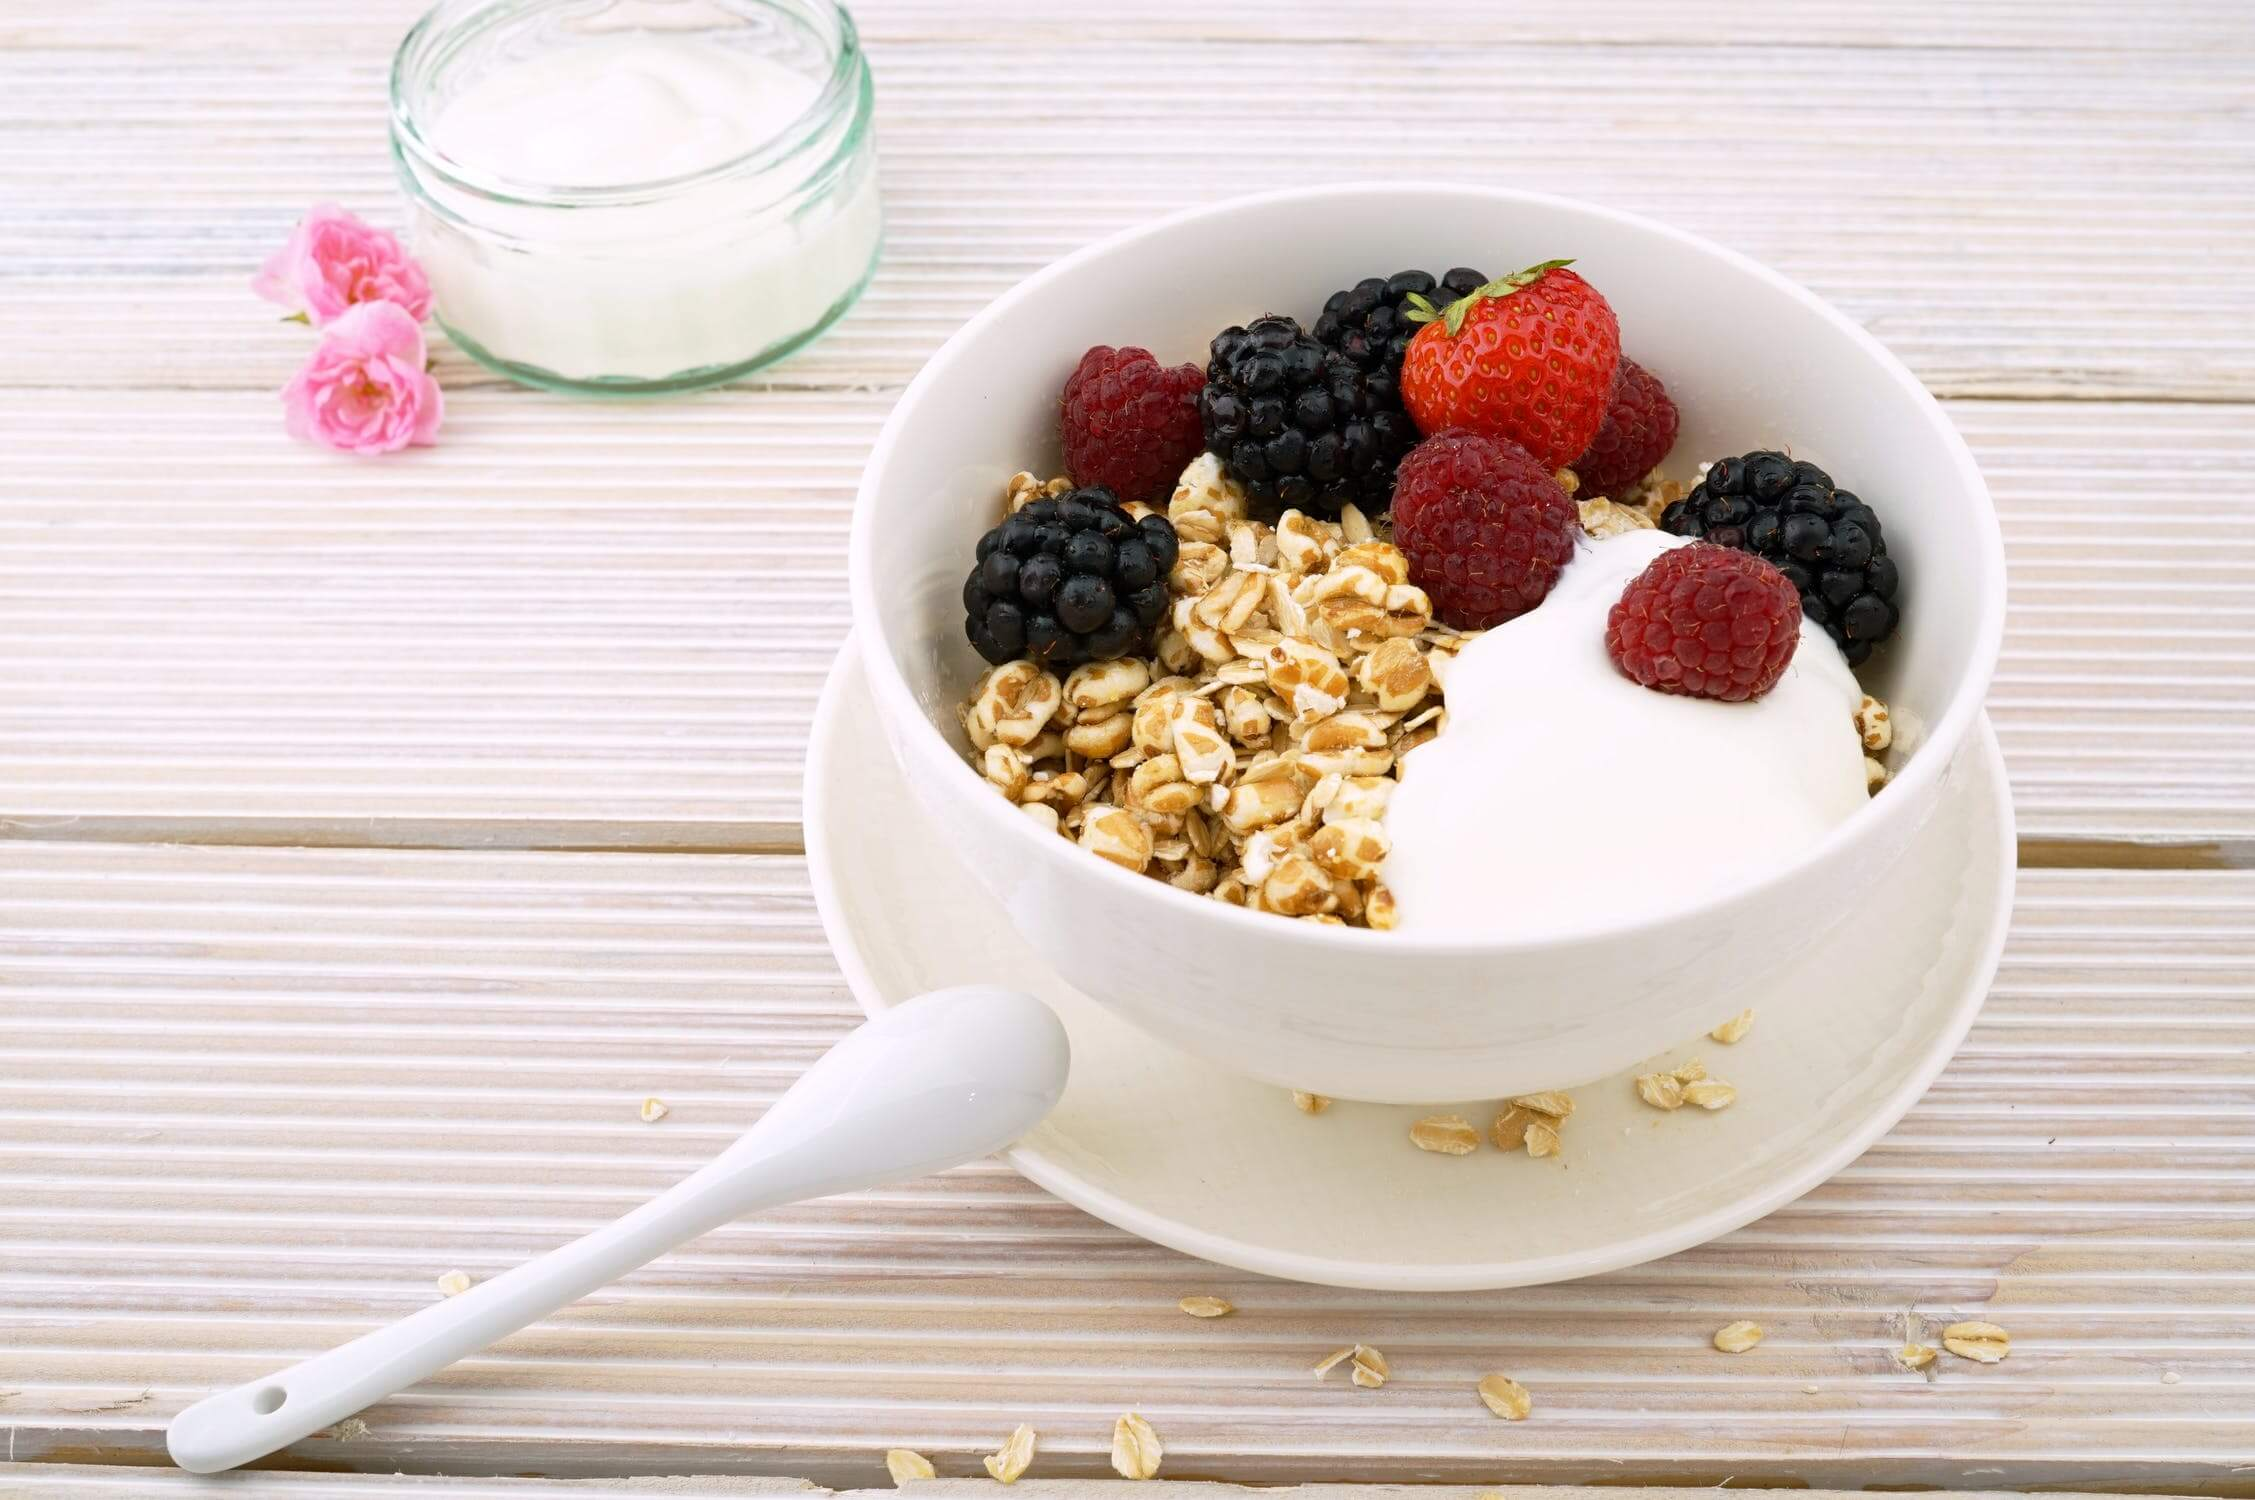 A bowl of berries, granola and yogurt. Yogurt is a great food for seniors with diabetes.